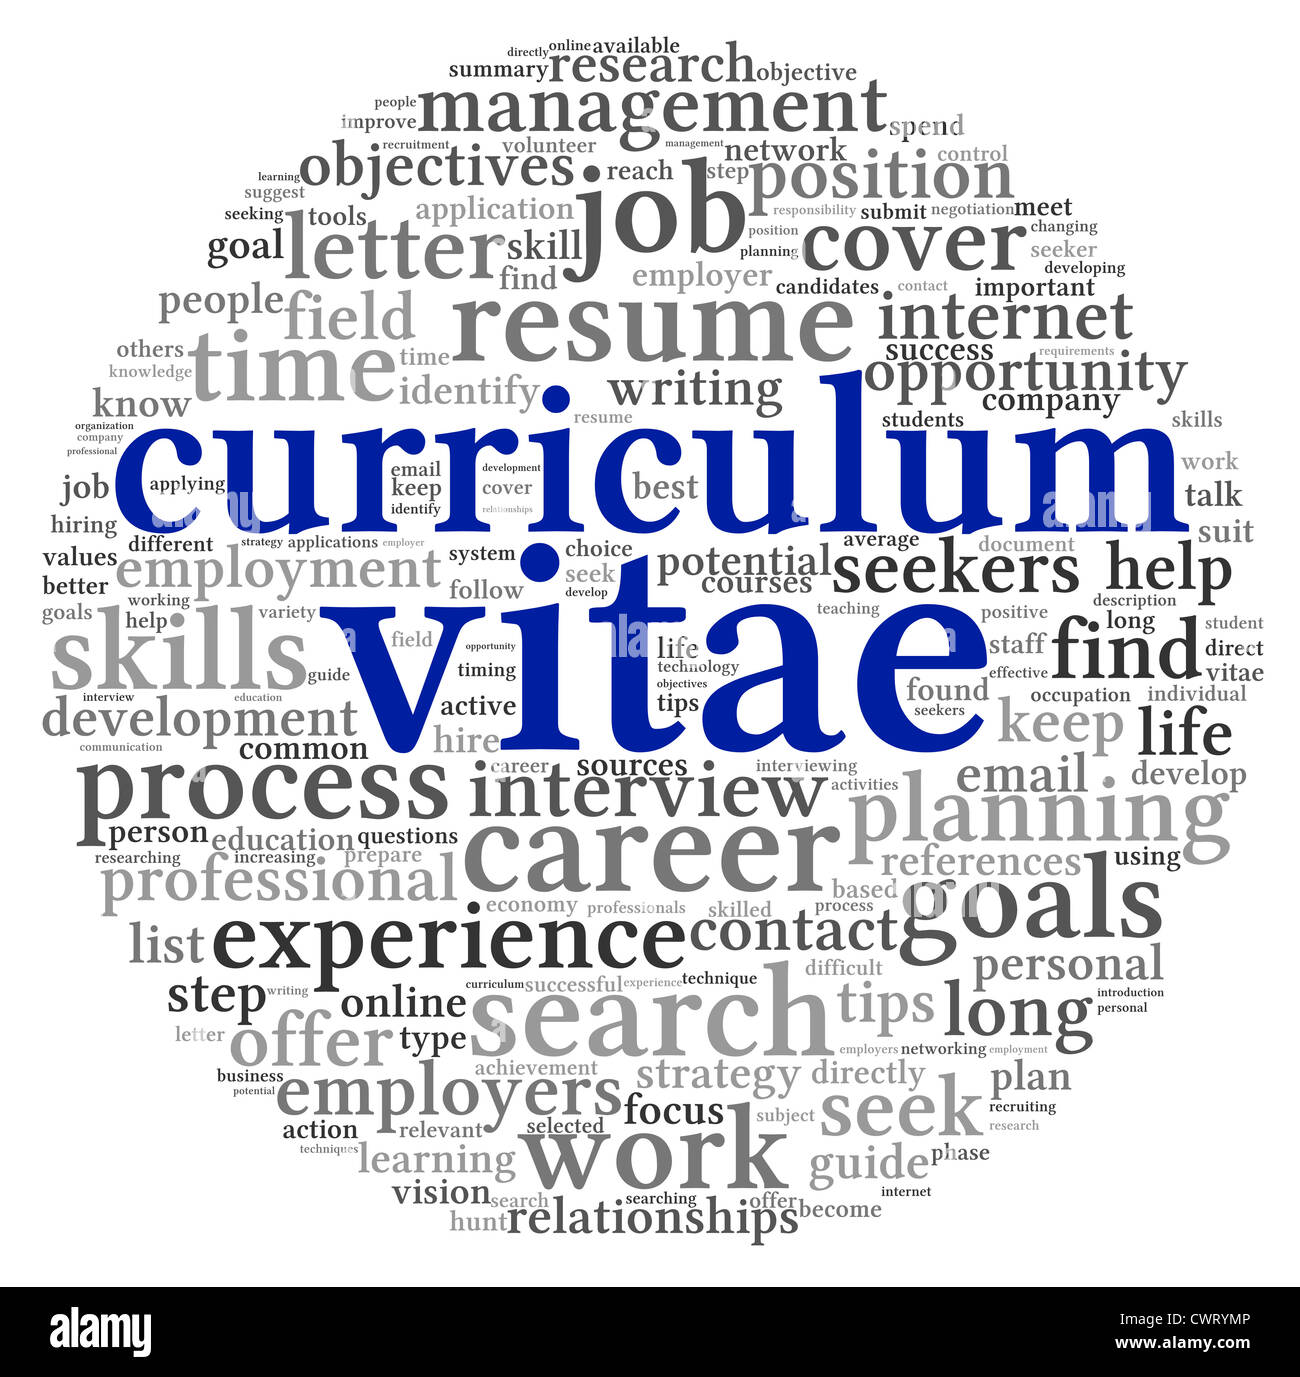 curriculum vitae cv concept in word tag cloud on white background curriculum vitae cv concept in word tag cloud on white background